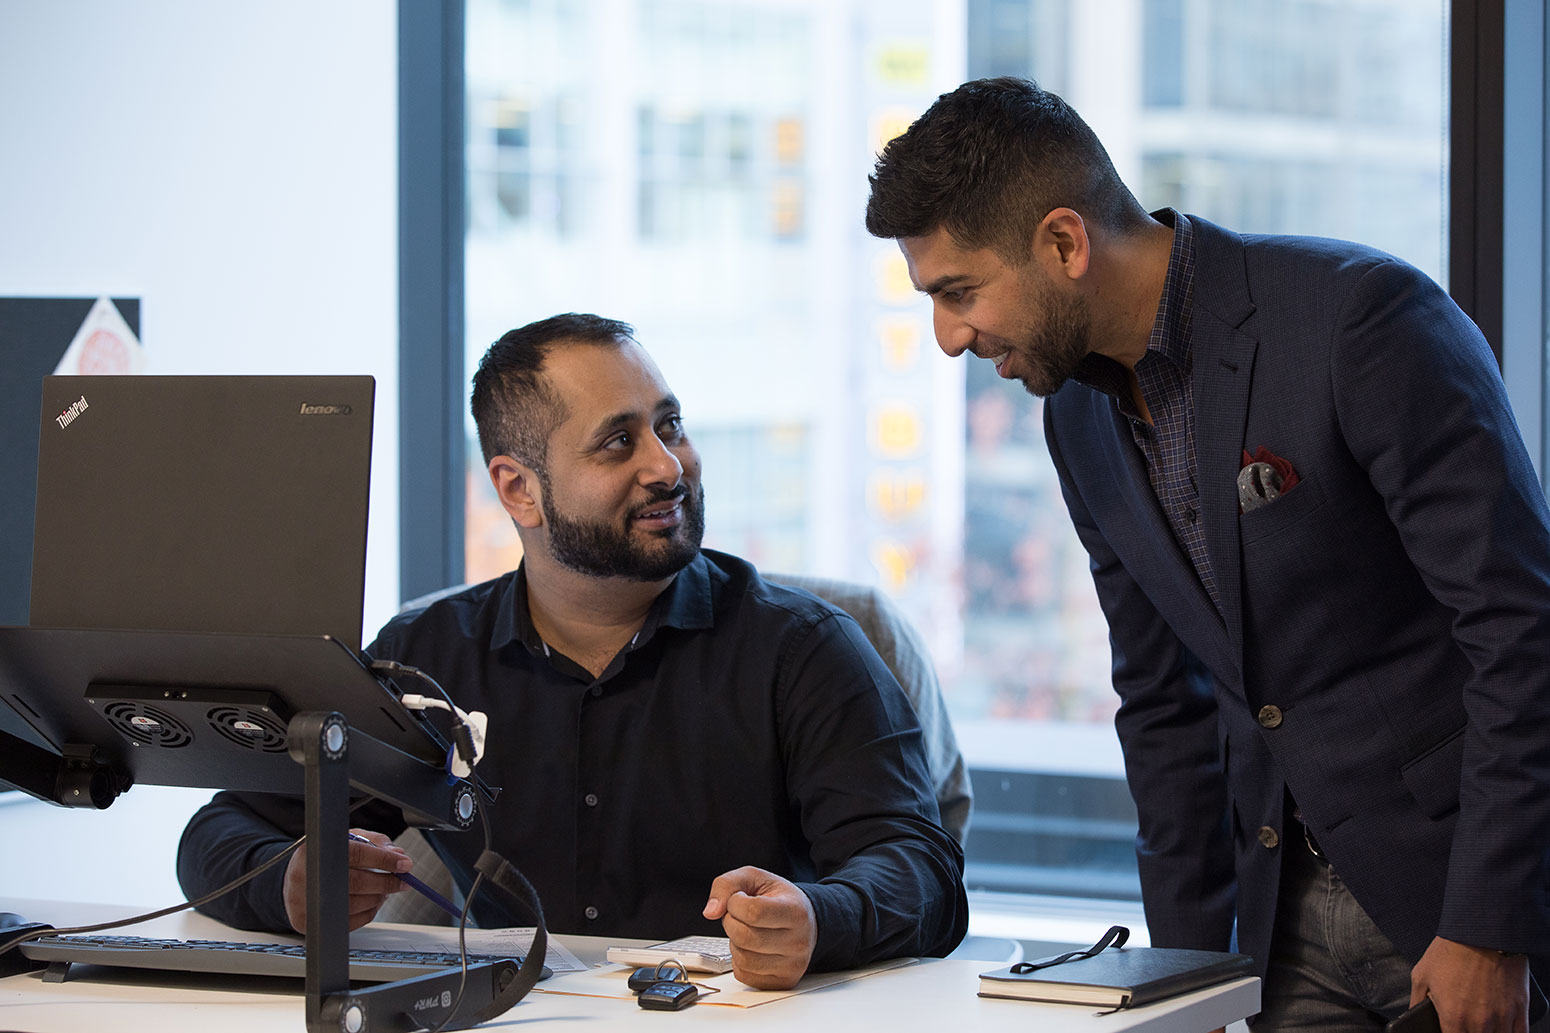 Two employees having a conversation at INDOCHINO headquarters.